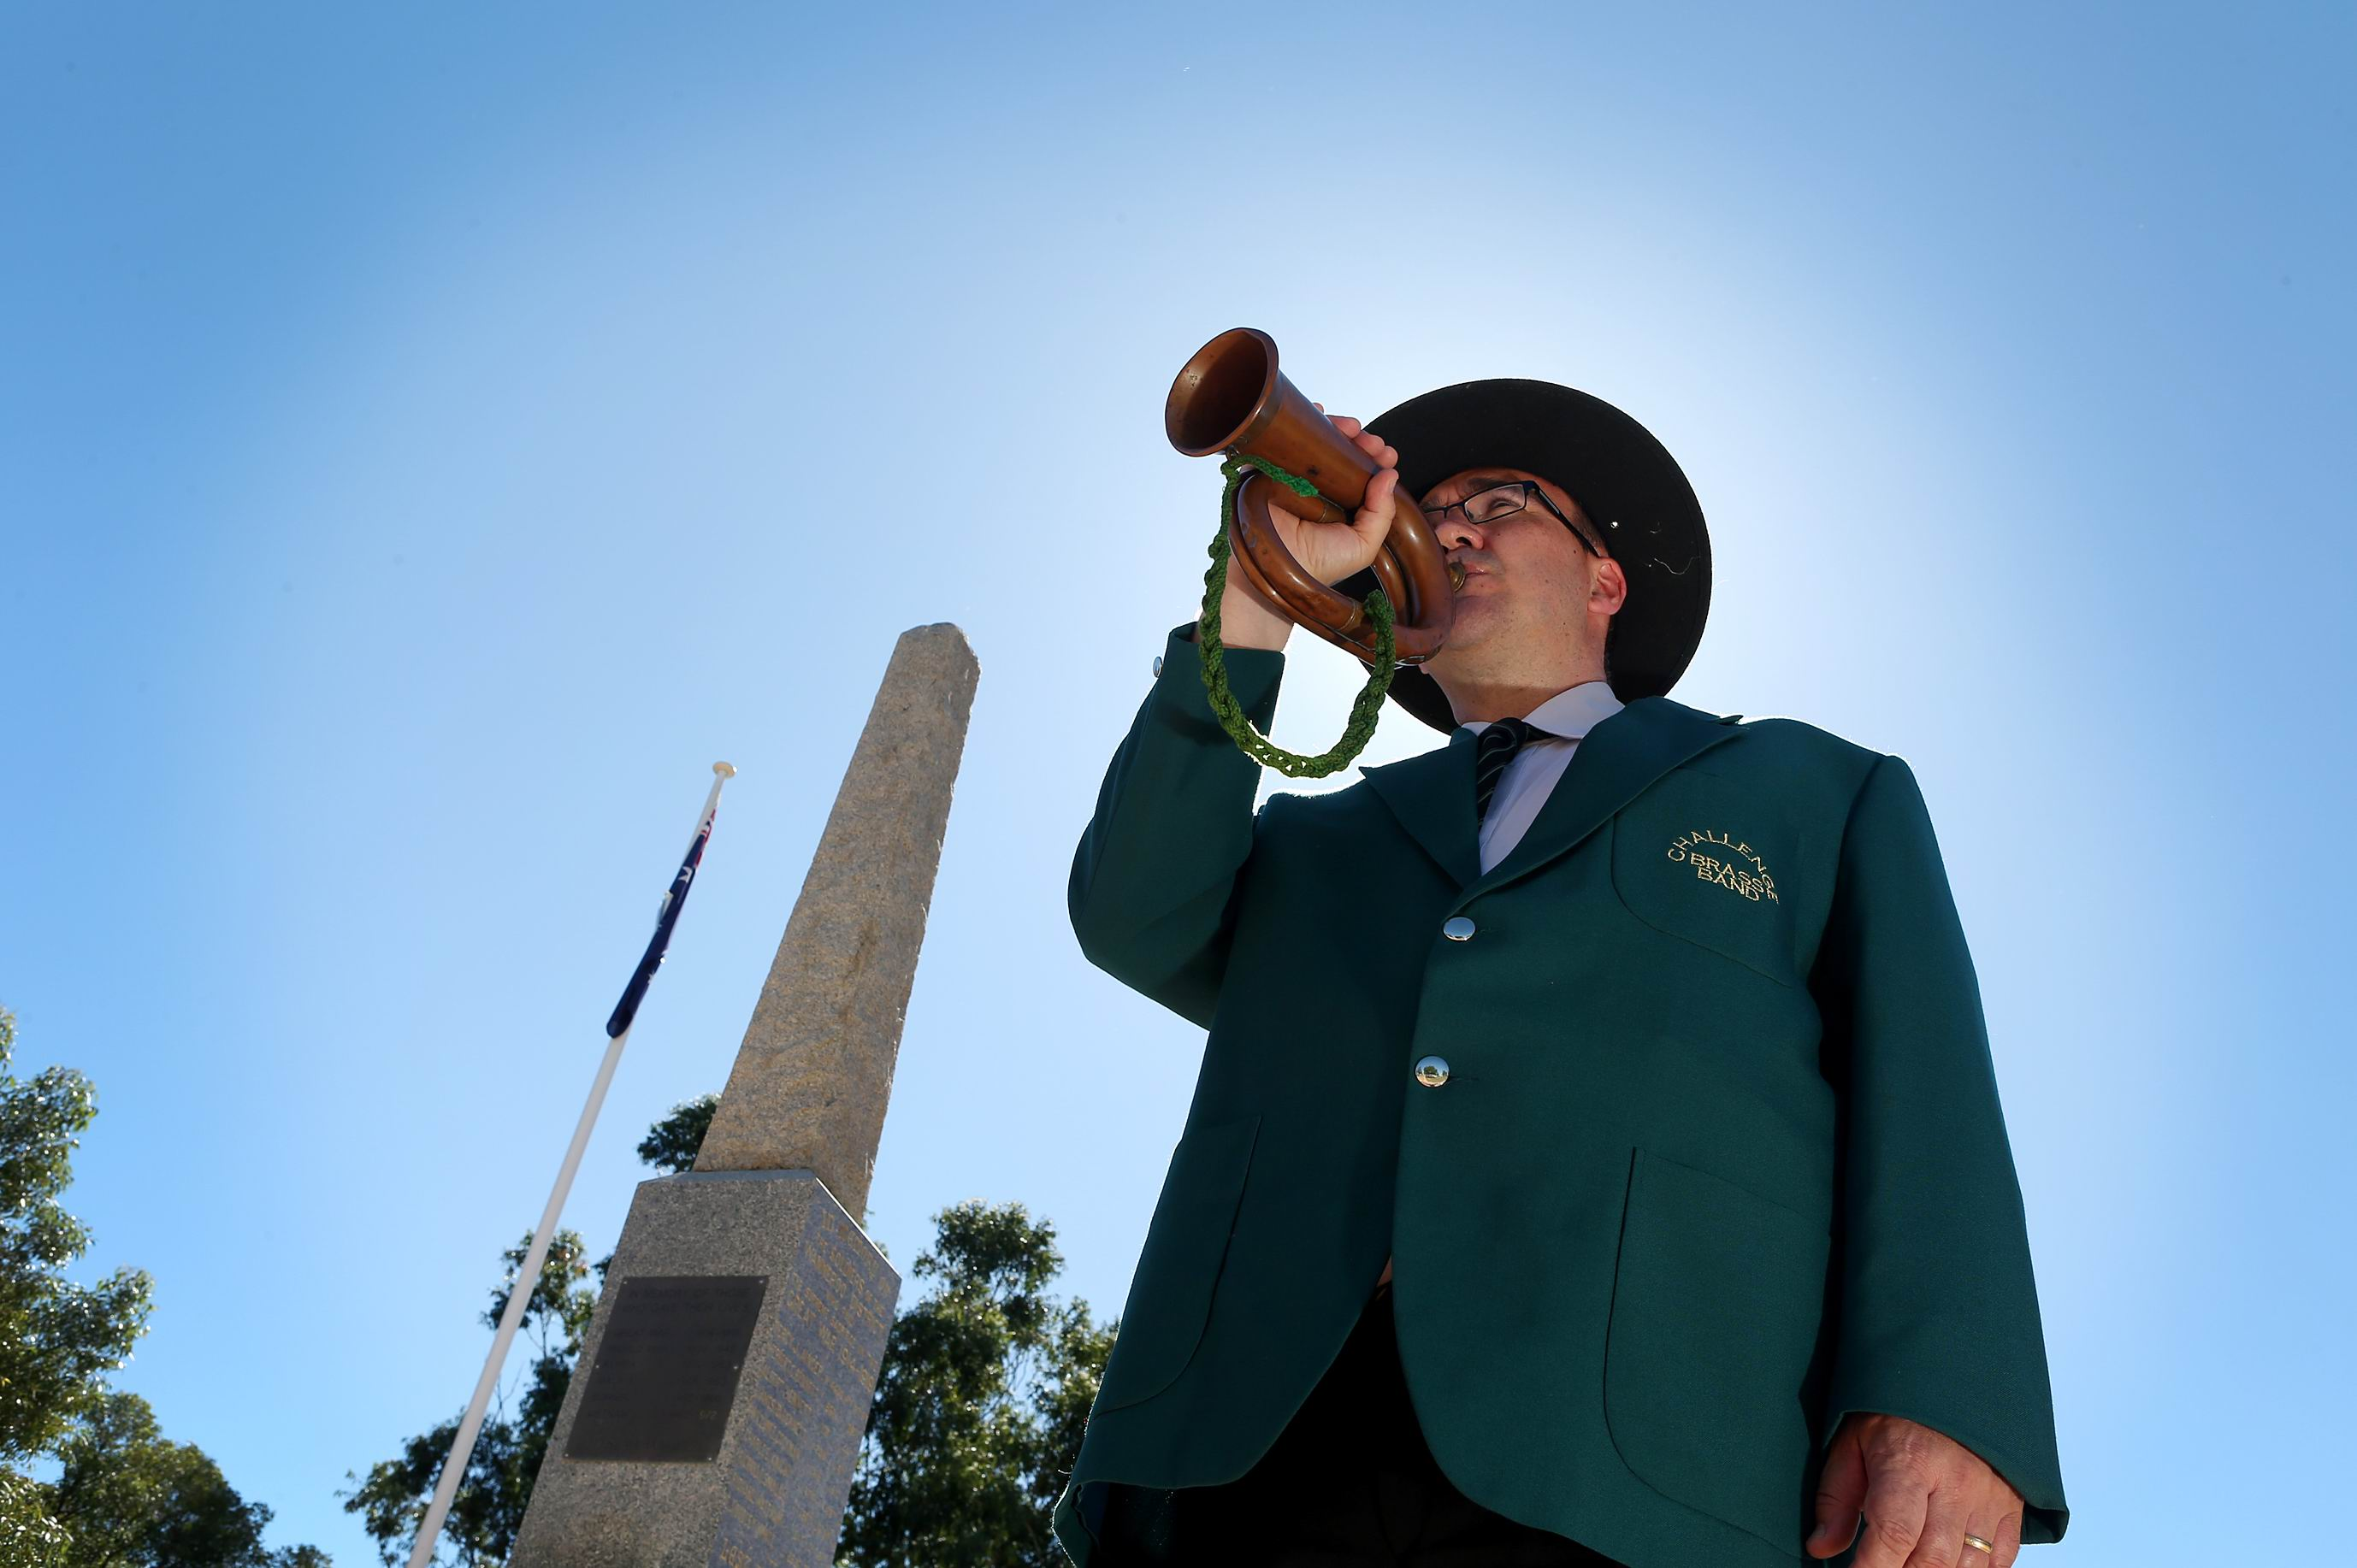 Ricky Wileman from the Challenge Brass Band will be playing a 100-year-old bugle that was used in WWI to sound Last Post at Saturday's Anzac service in Wanneroo